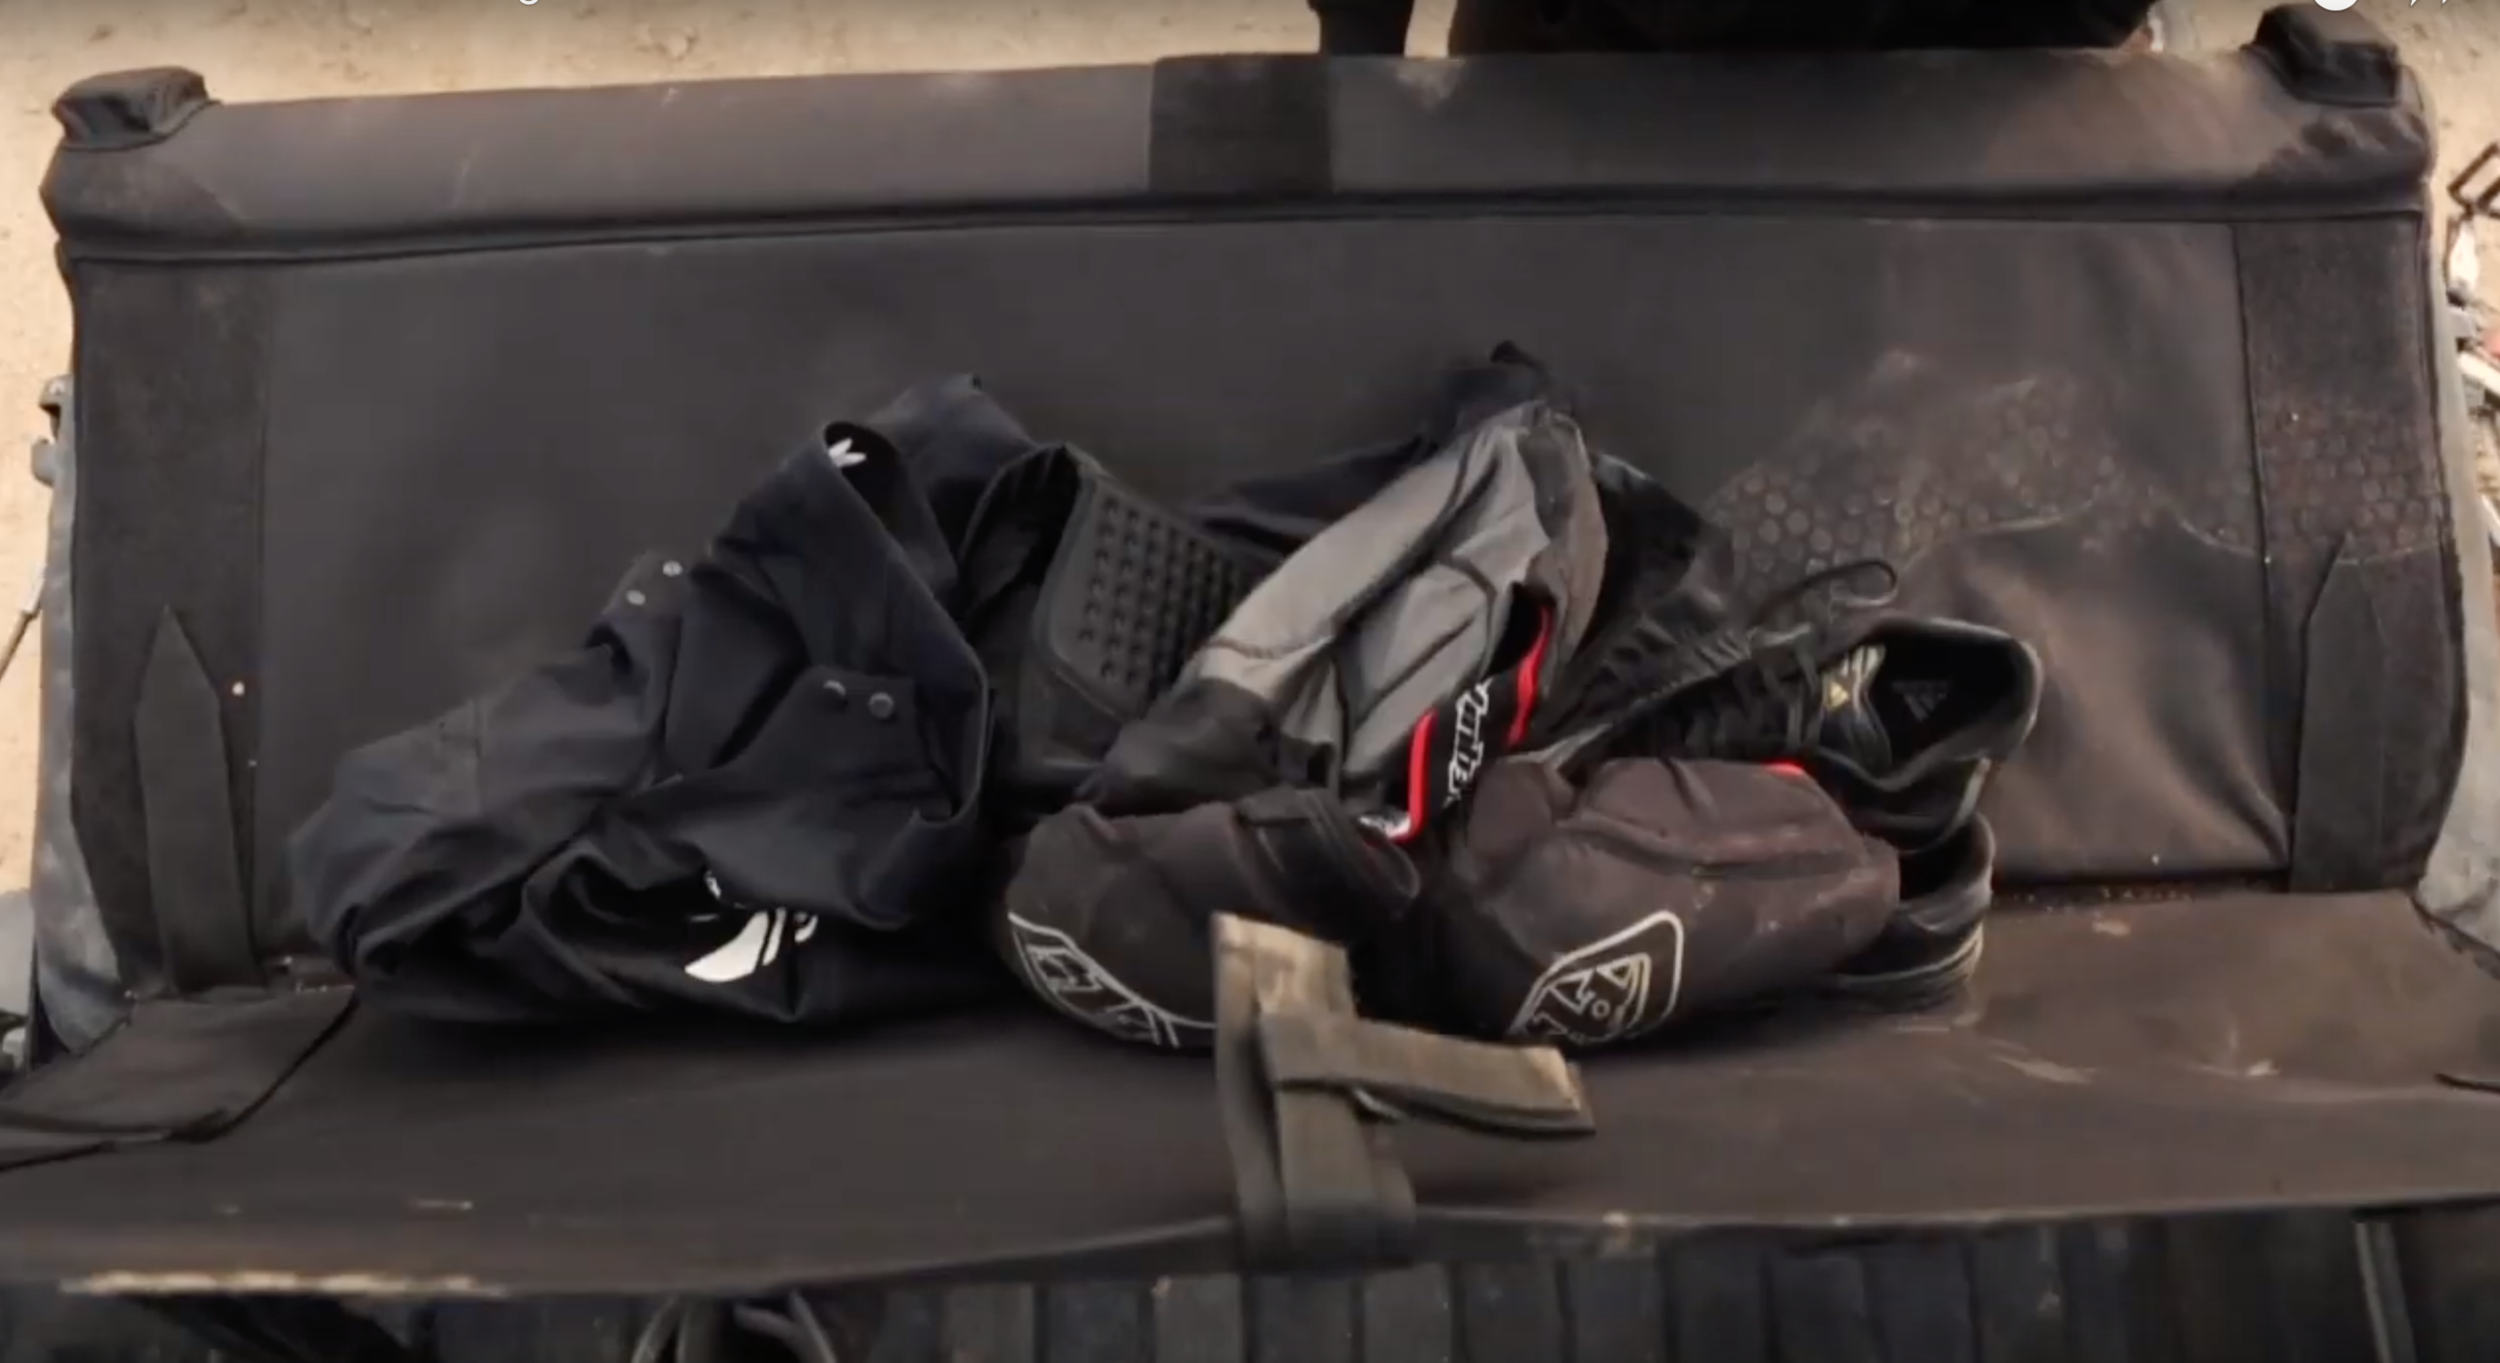 TURN YOUR TAILGATE INTO A COUCH - AND STASH YOUR STINKY GEAR WHEN YOU'RE DONE